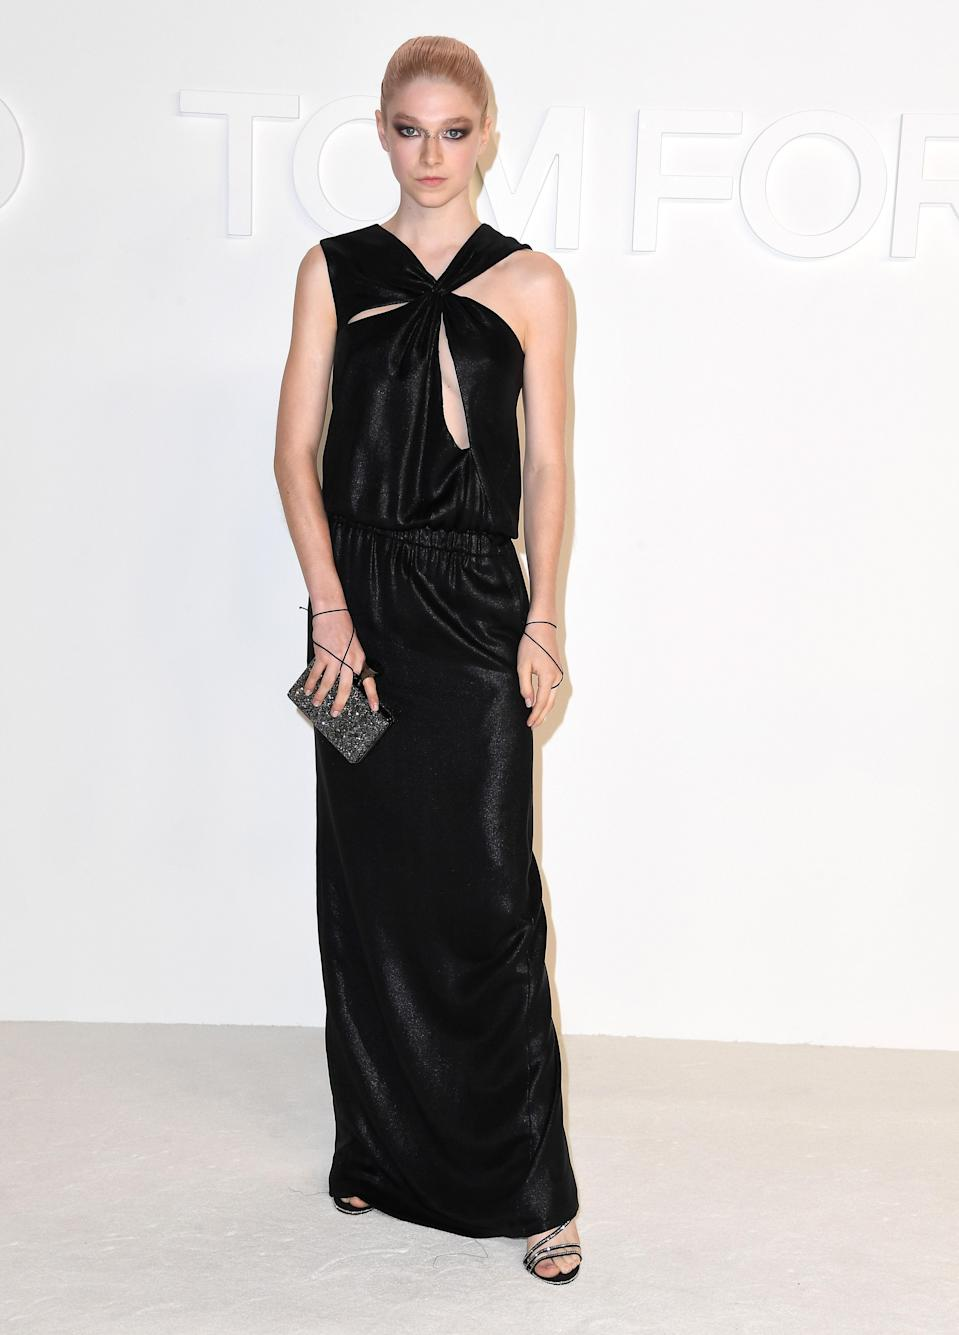 in Tom Ford at the designer's Los Angeles show, 2020